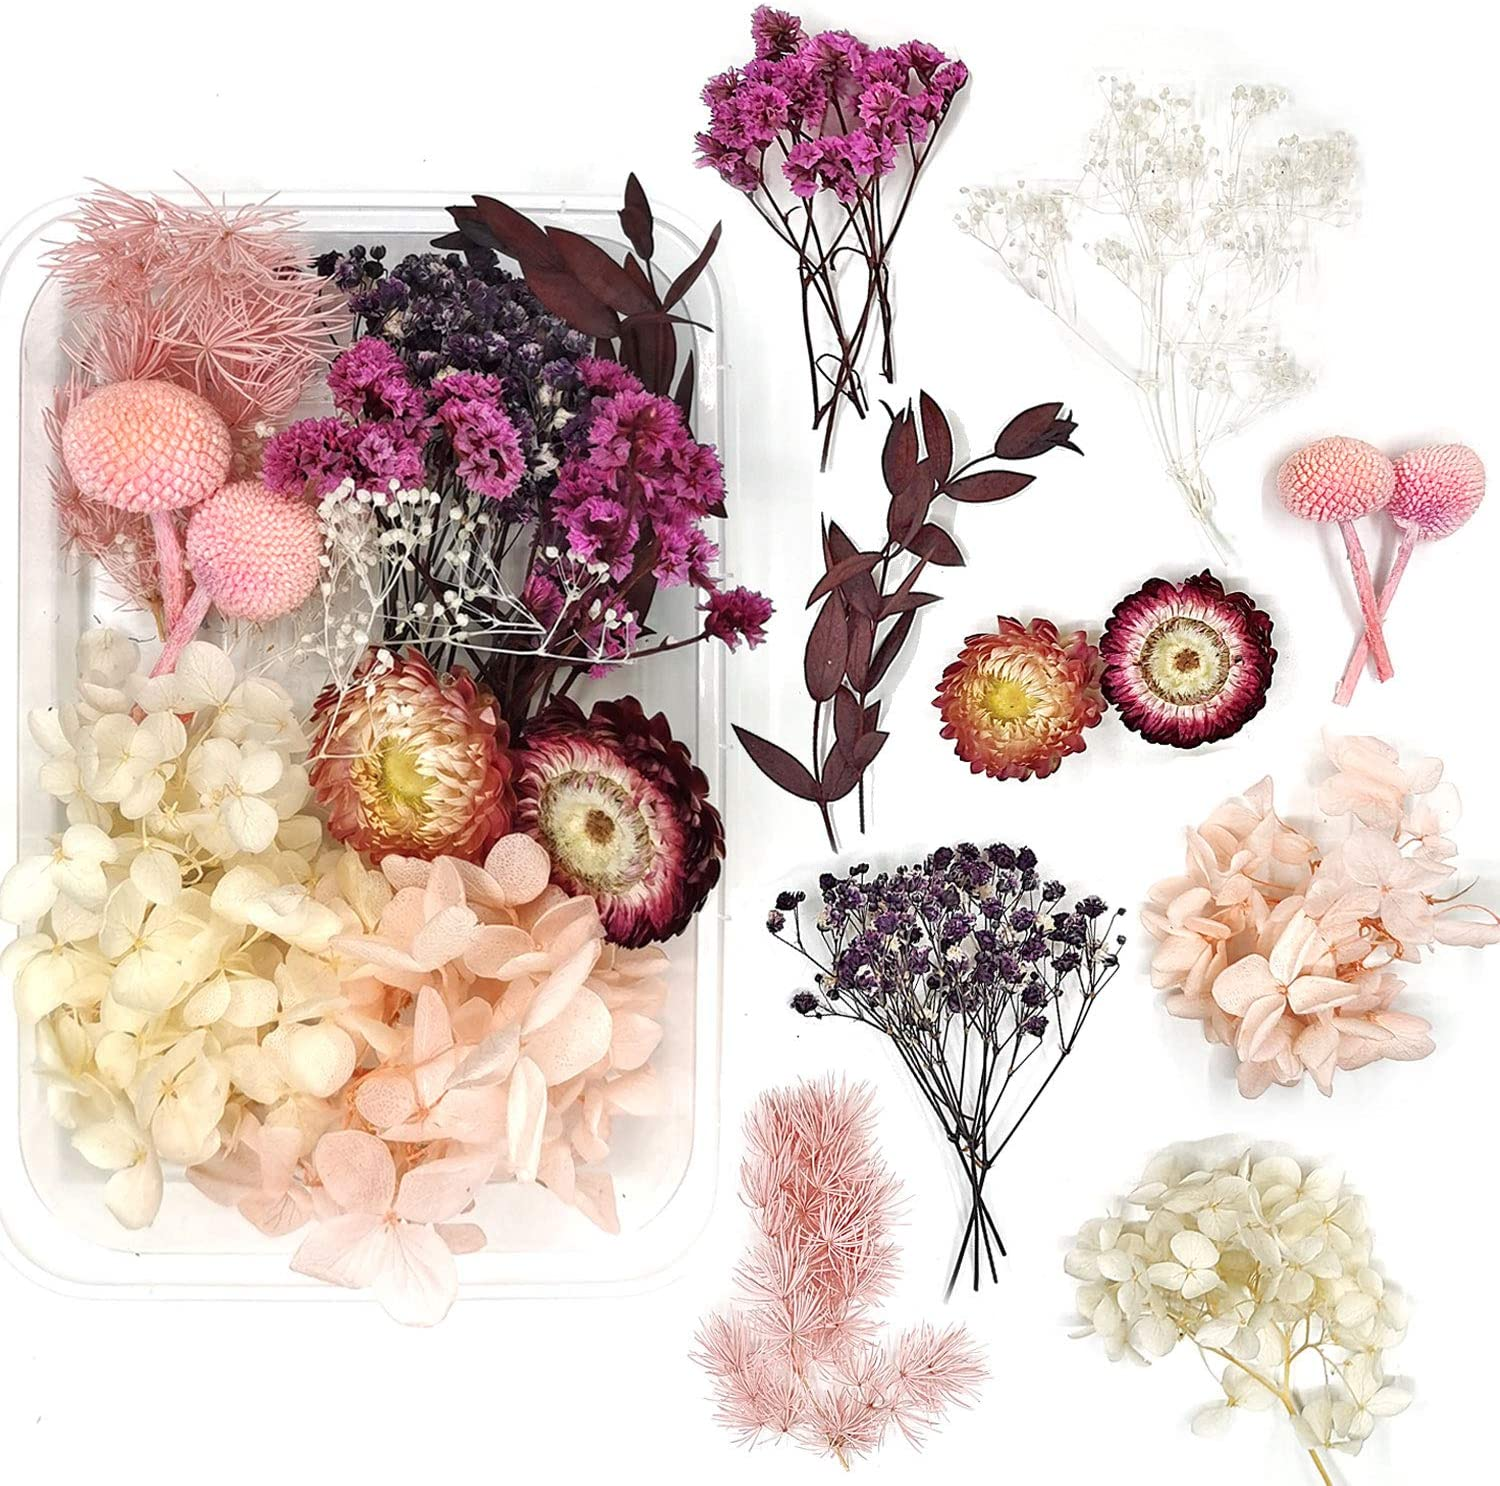 Amazon Com Real Natural Dried Flowers For Art Craft Mixed Multiple Colorful Dried Flowers For Soap Candle Scrapbooking Diy Resin Pink Dried Flowers